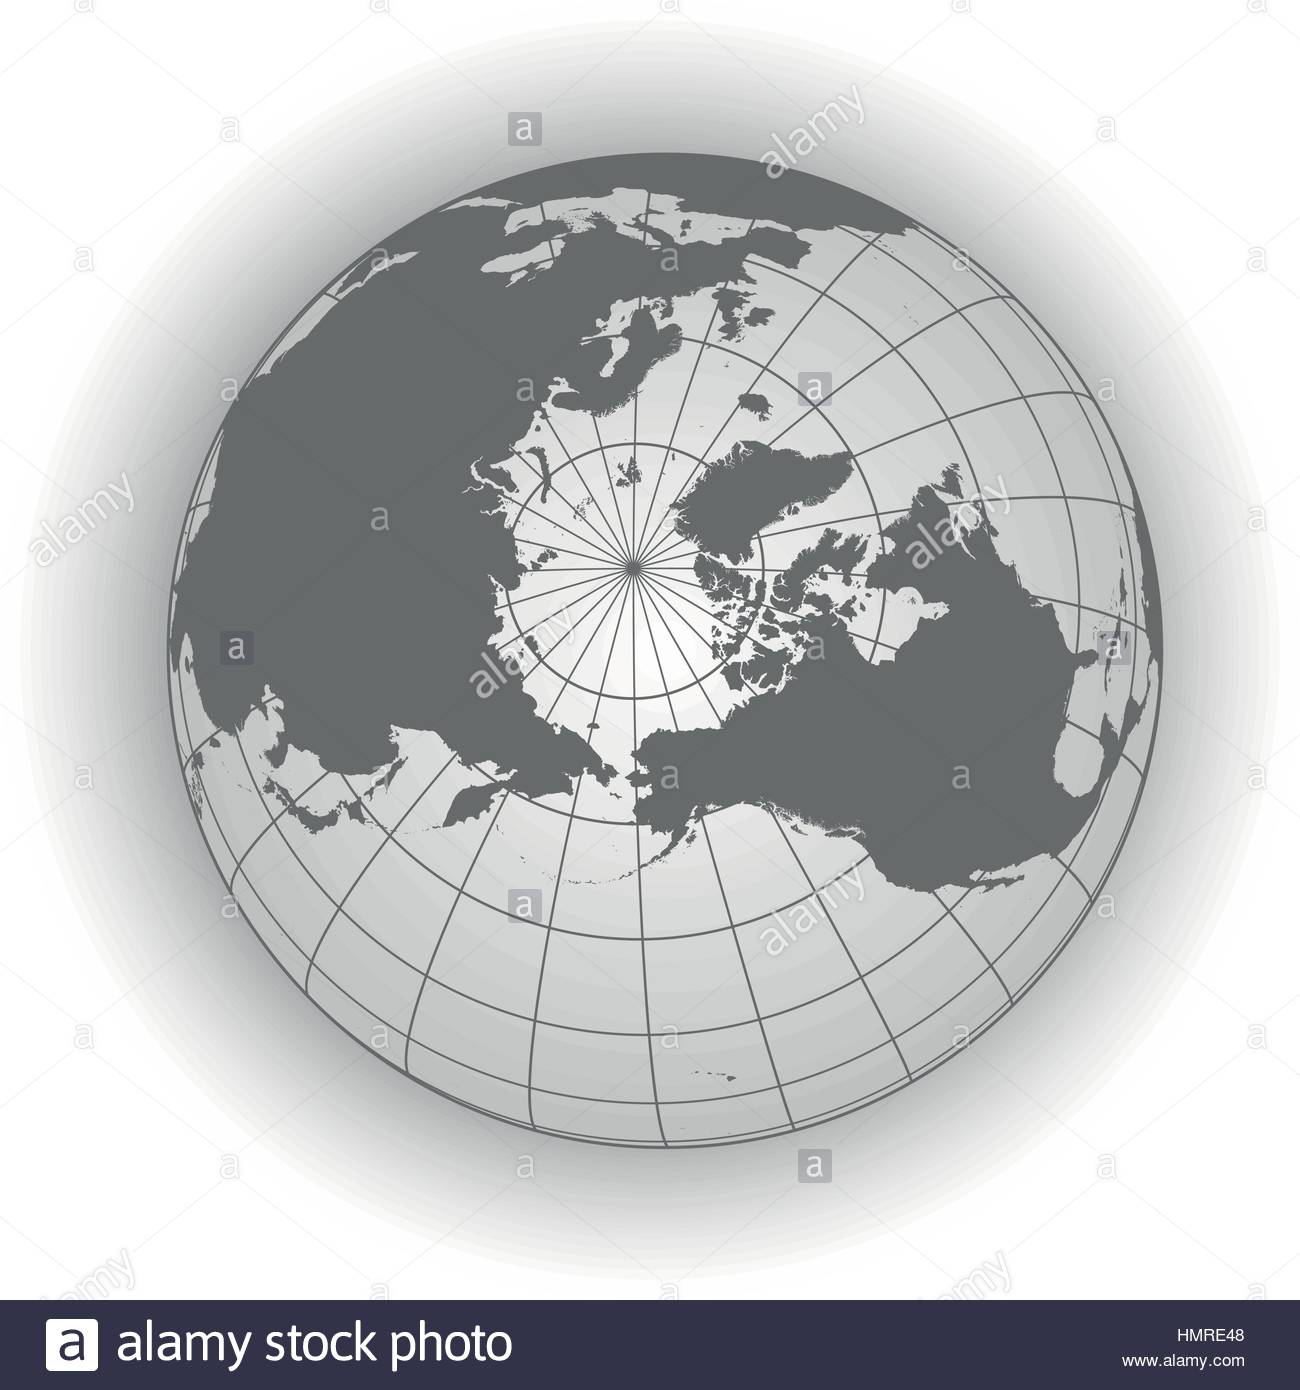 North pole map europe greenland asia america russia earth north pole map europe greenland asia america russia earth globe worldmap elements of this image furnished by nasa gumiabroncs Gallery